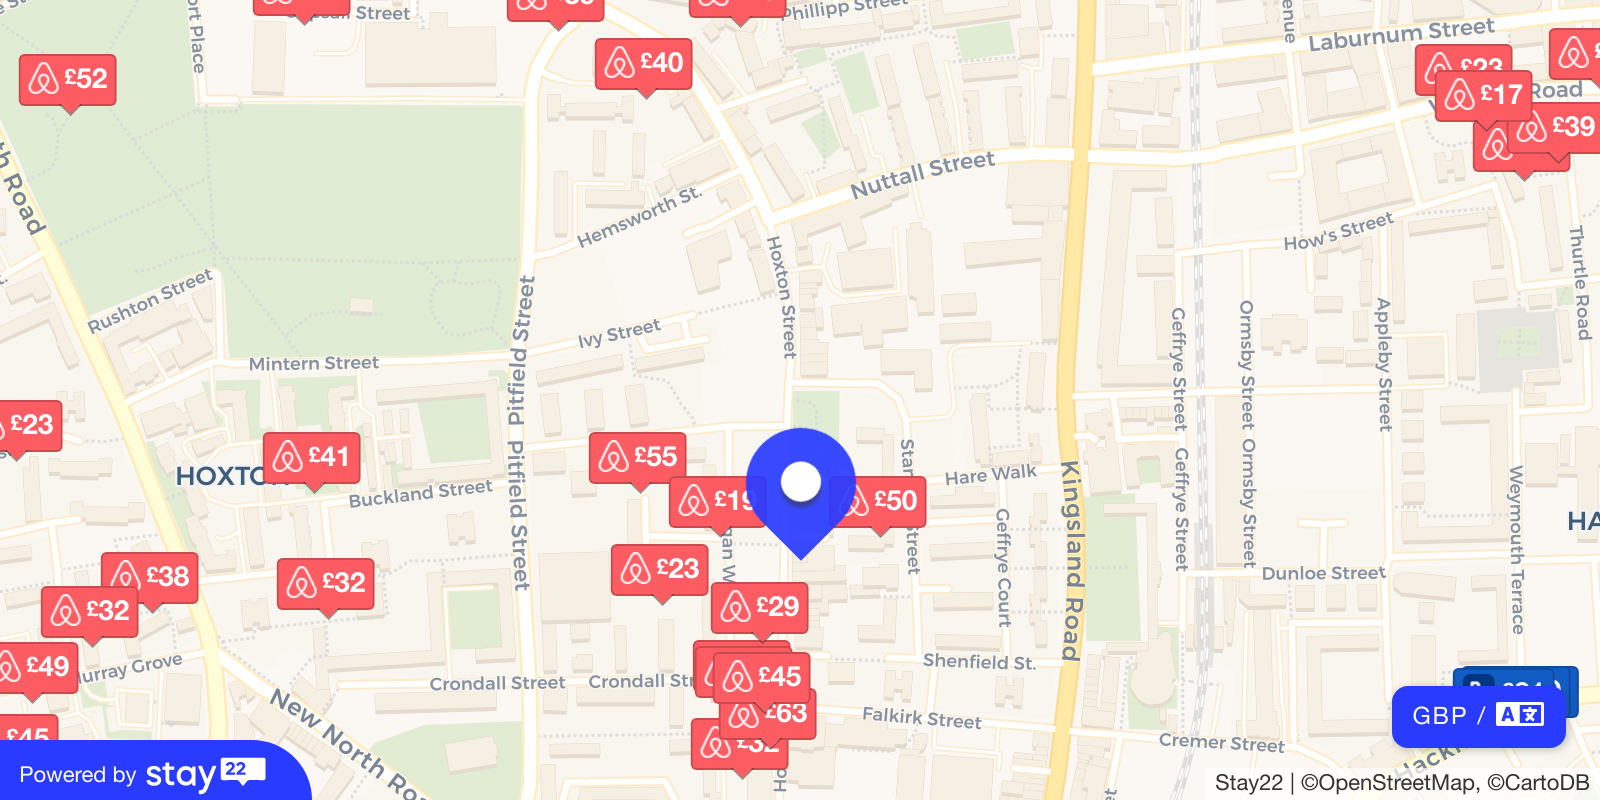 Places to stay near Hoxton Hall Theatre